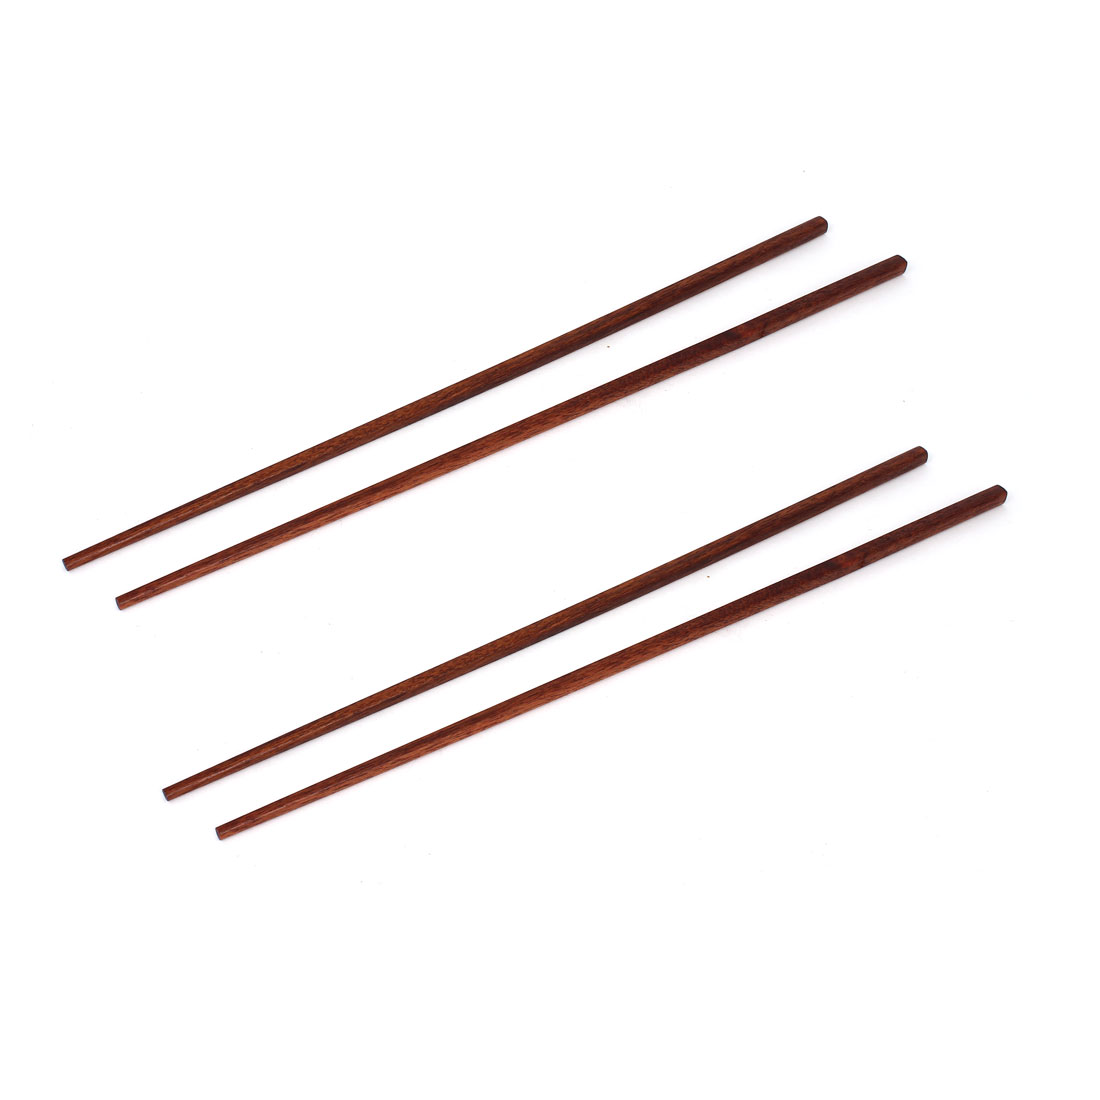 2 Pairs 16.5 Inch Home Kitchen Hot Pot Chopsticks Utensil Coffee Color